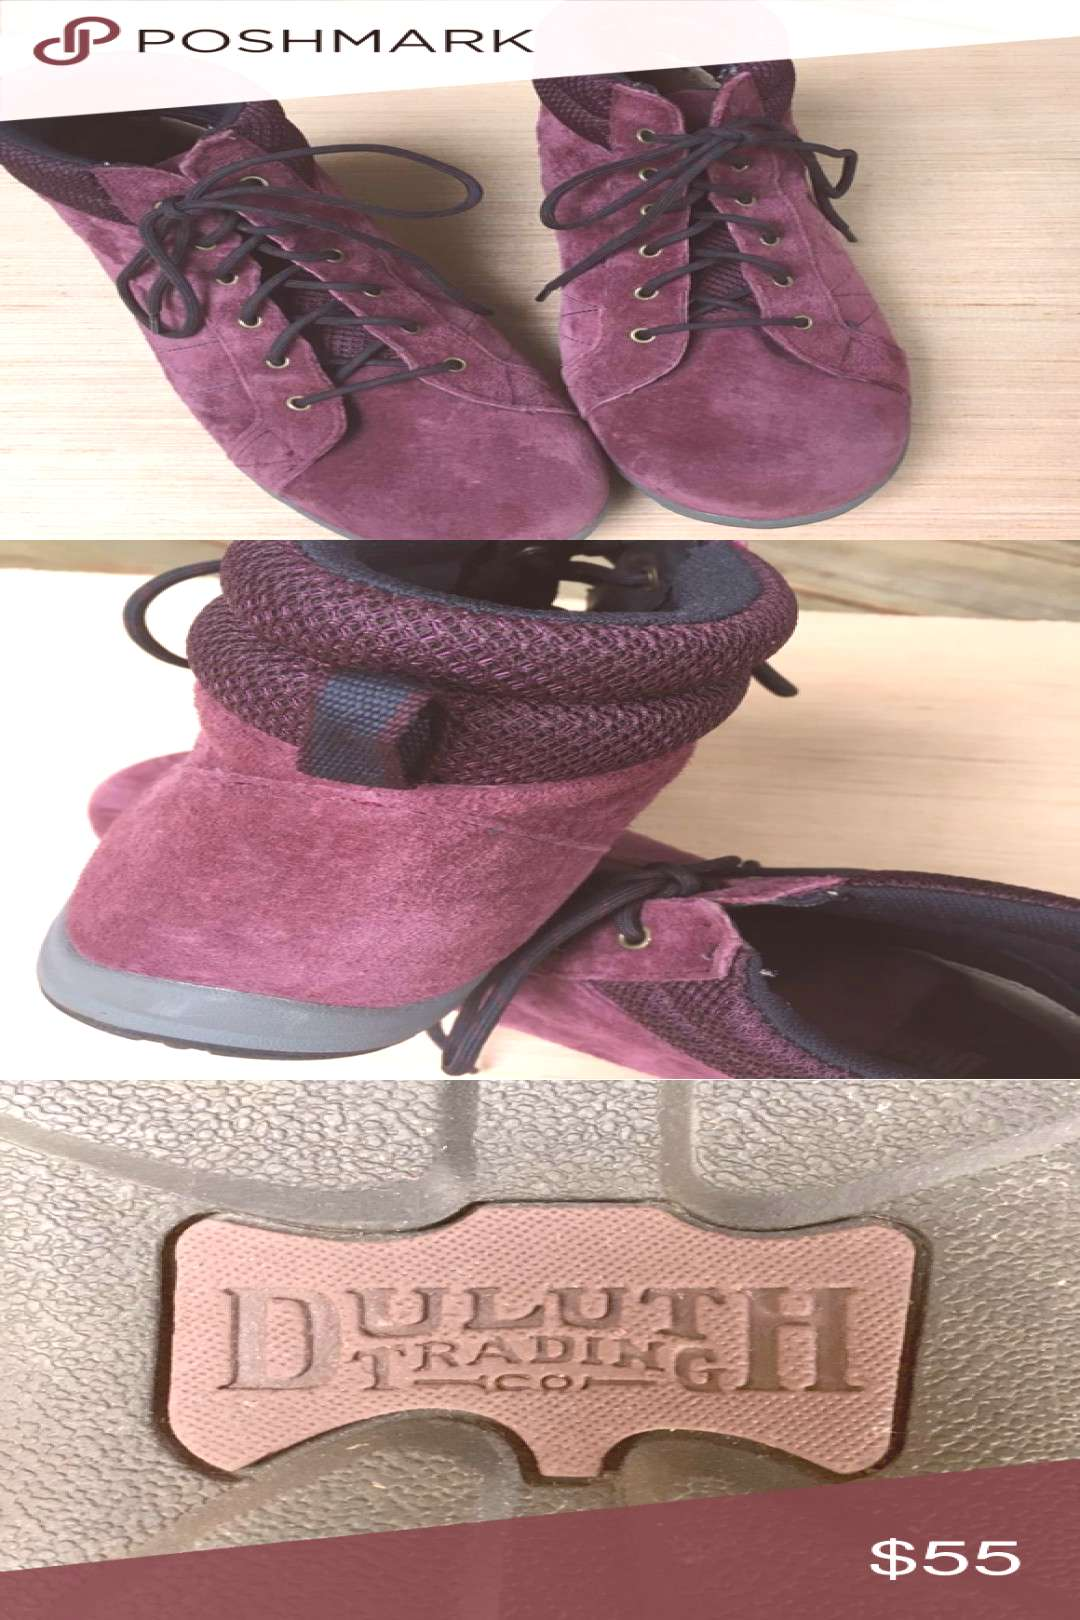 Duluth Trading Co Shoes/Boots Duluth Trading Company Boots, Steel Creek Boots, Suede Leather uppers